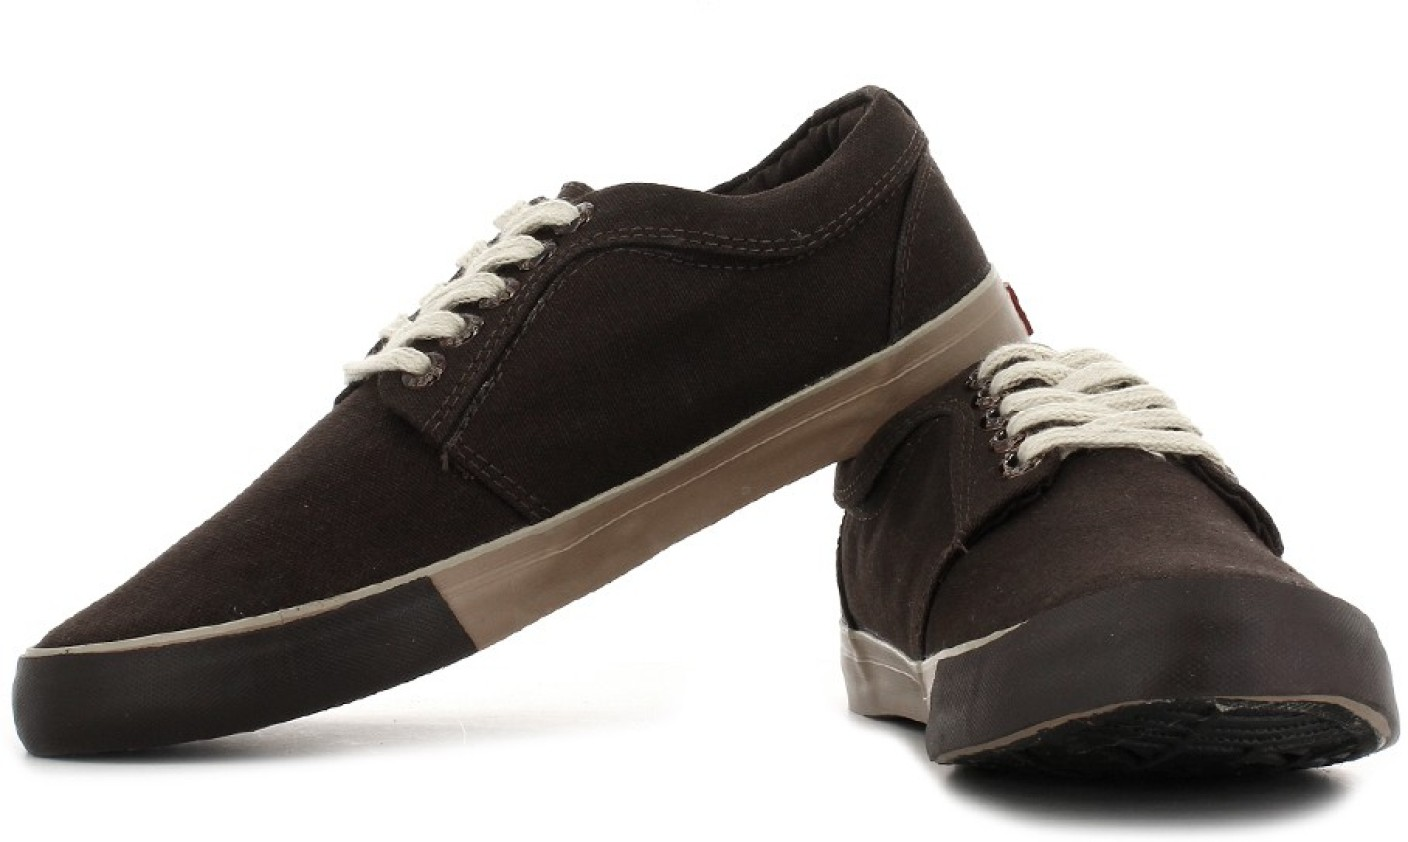 Sparx Canvas Sneakers For Men - Buy Dark Brown Color Sparx ... Canvas Shoes For Men Price